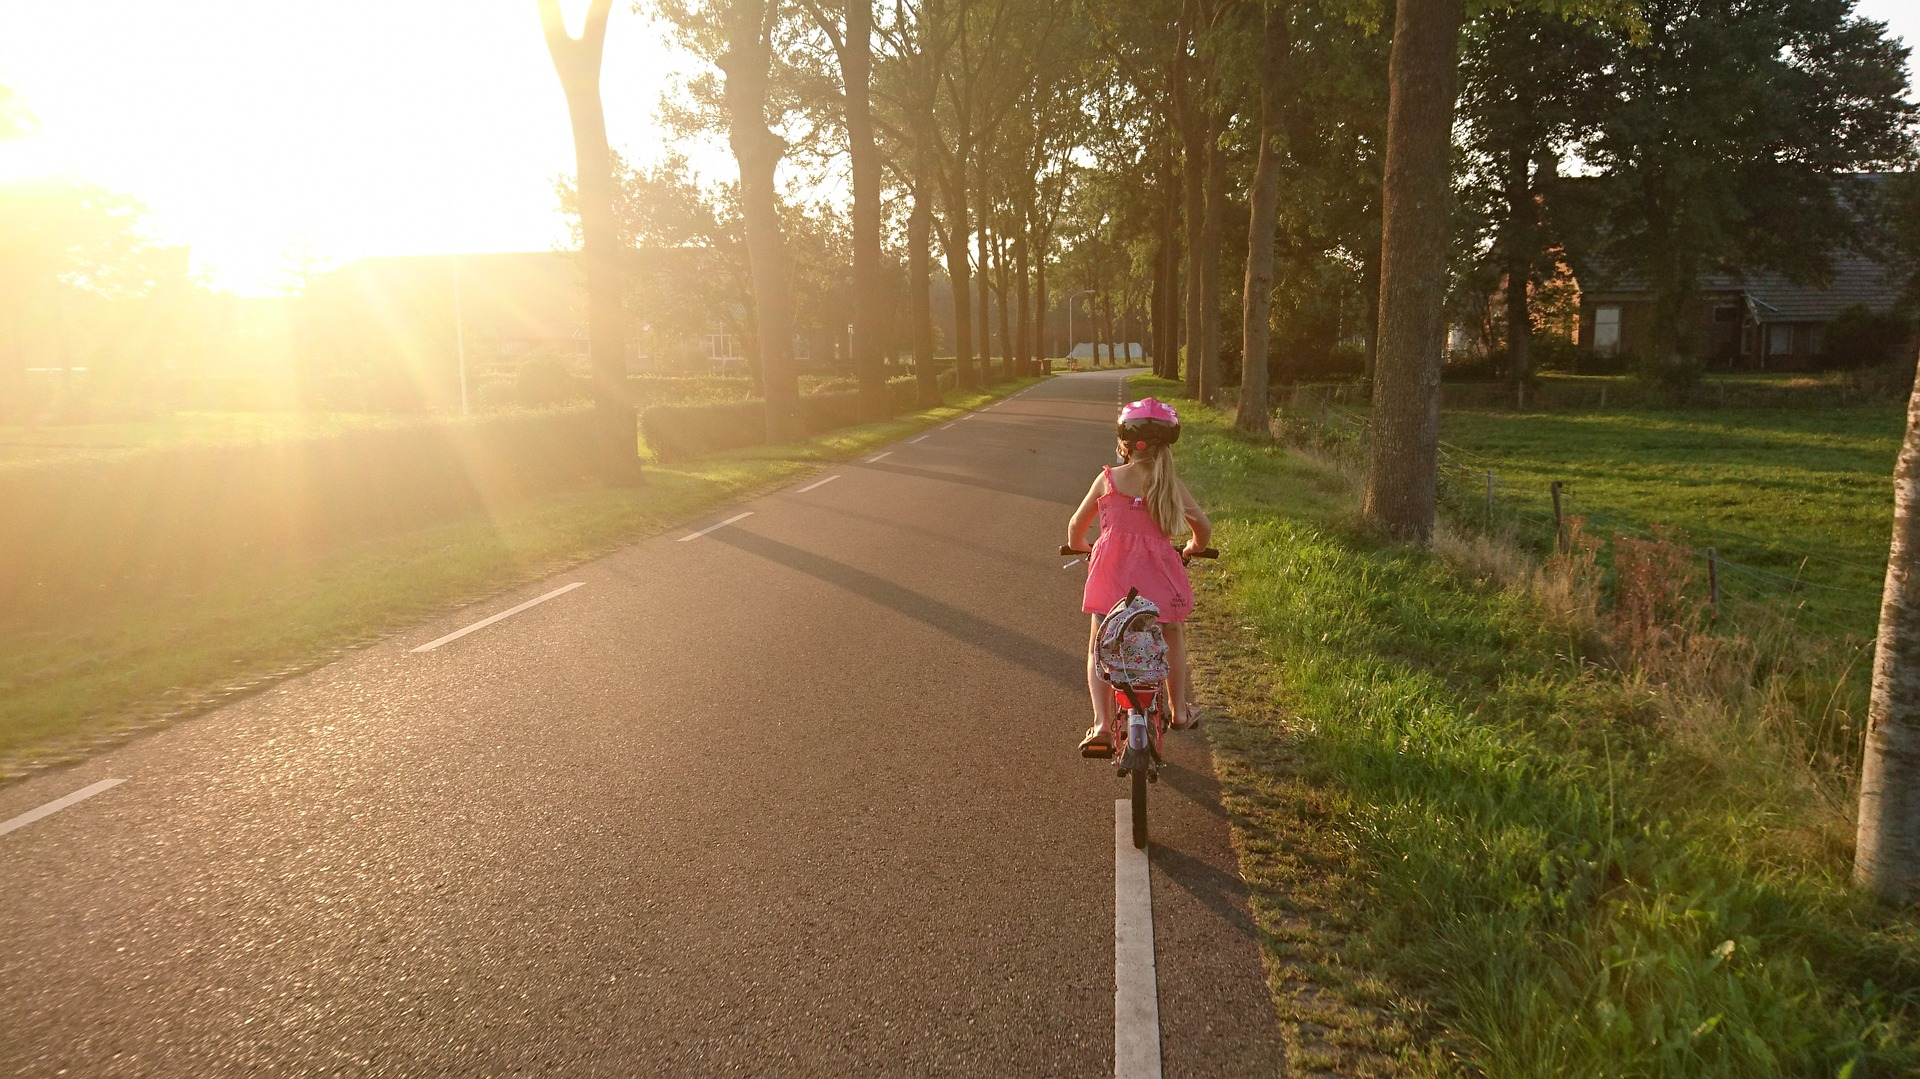 Bicycle Safety Tips for Children